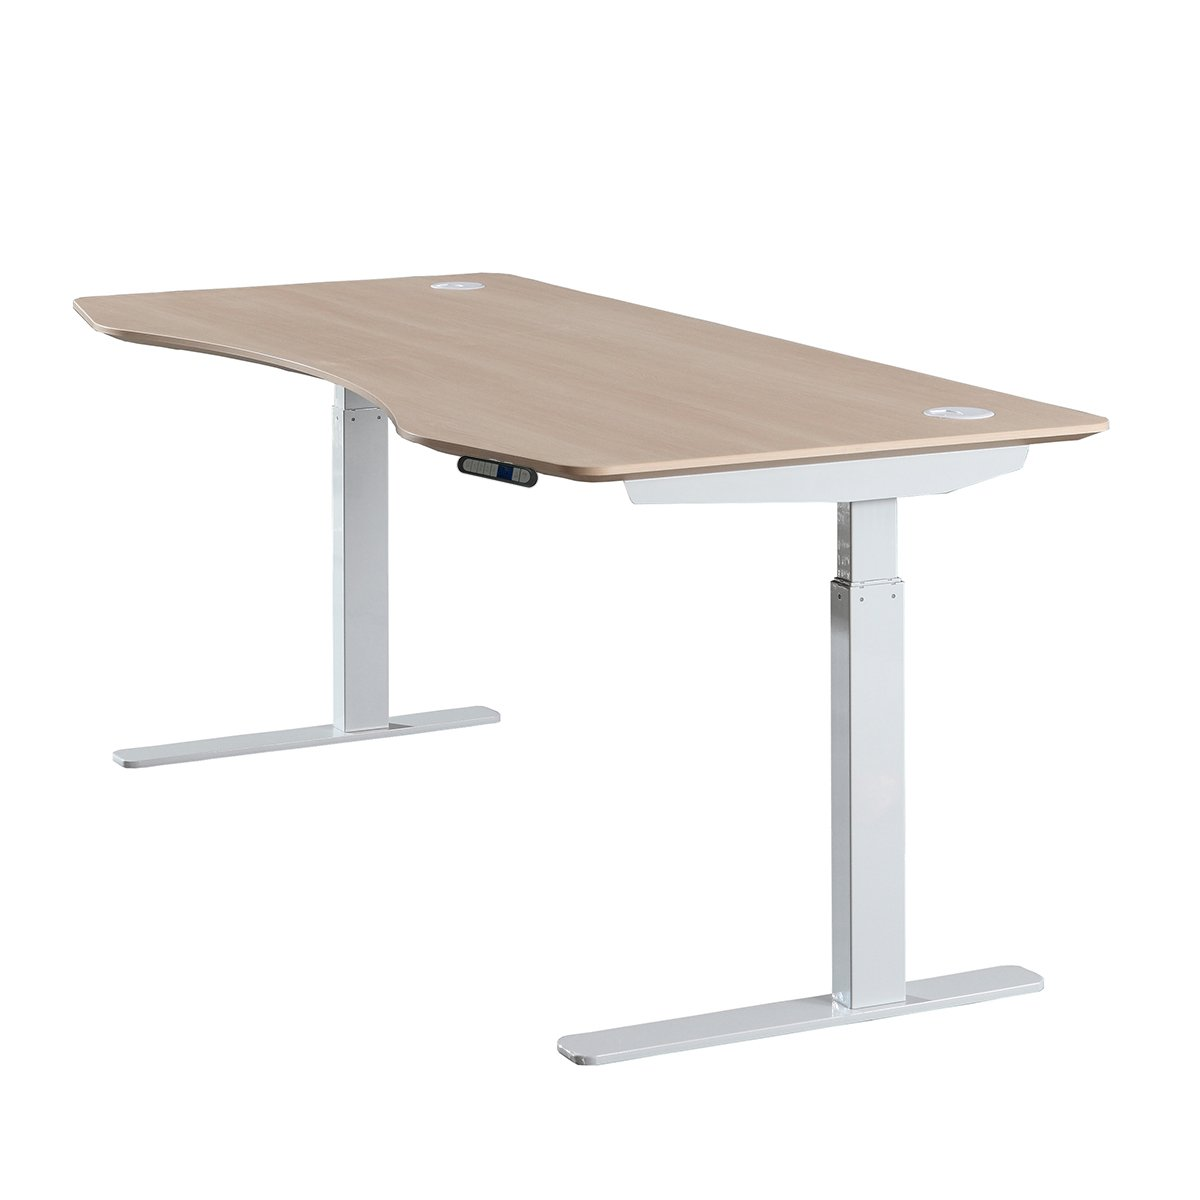 ApexDesk Elite Series 60'' W Electric Height Adjustable Standing Desk (Memory Controller, 60'' Light Oak Top, Off-White Frame) by ApexDesk